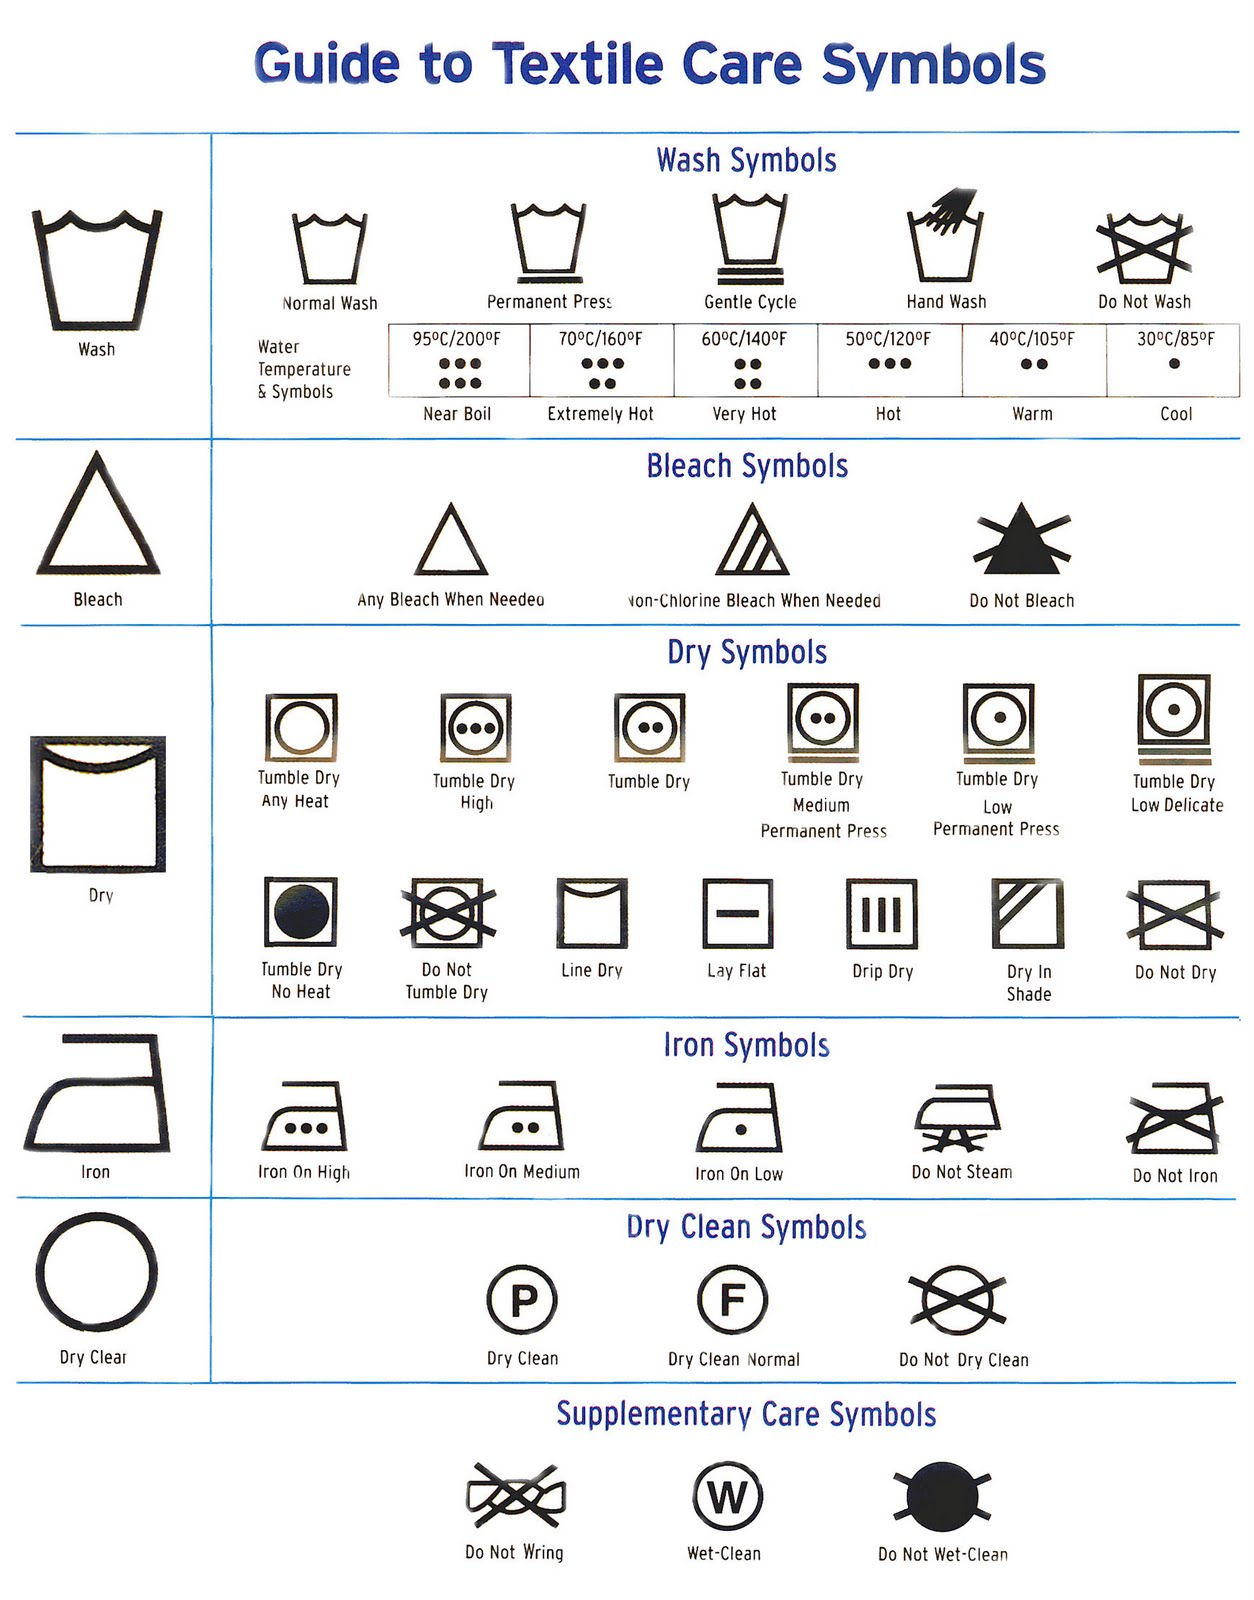 Washing symbols This group of symbols lets you know if your garment is safe to put through the washing machine, or if it needs more delicate treatment. Tub with wavy water: This means it is safe to machine wash.